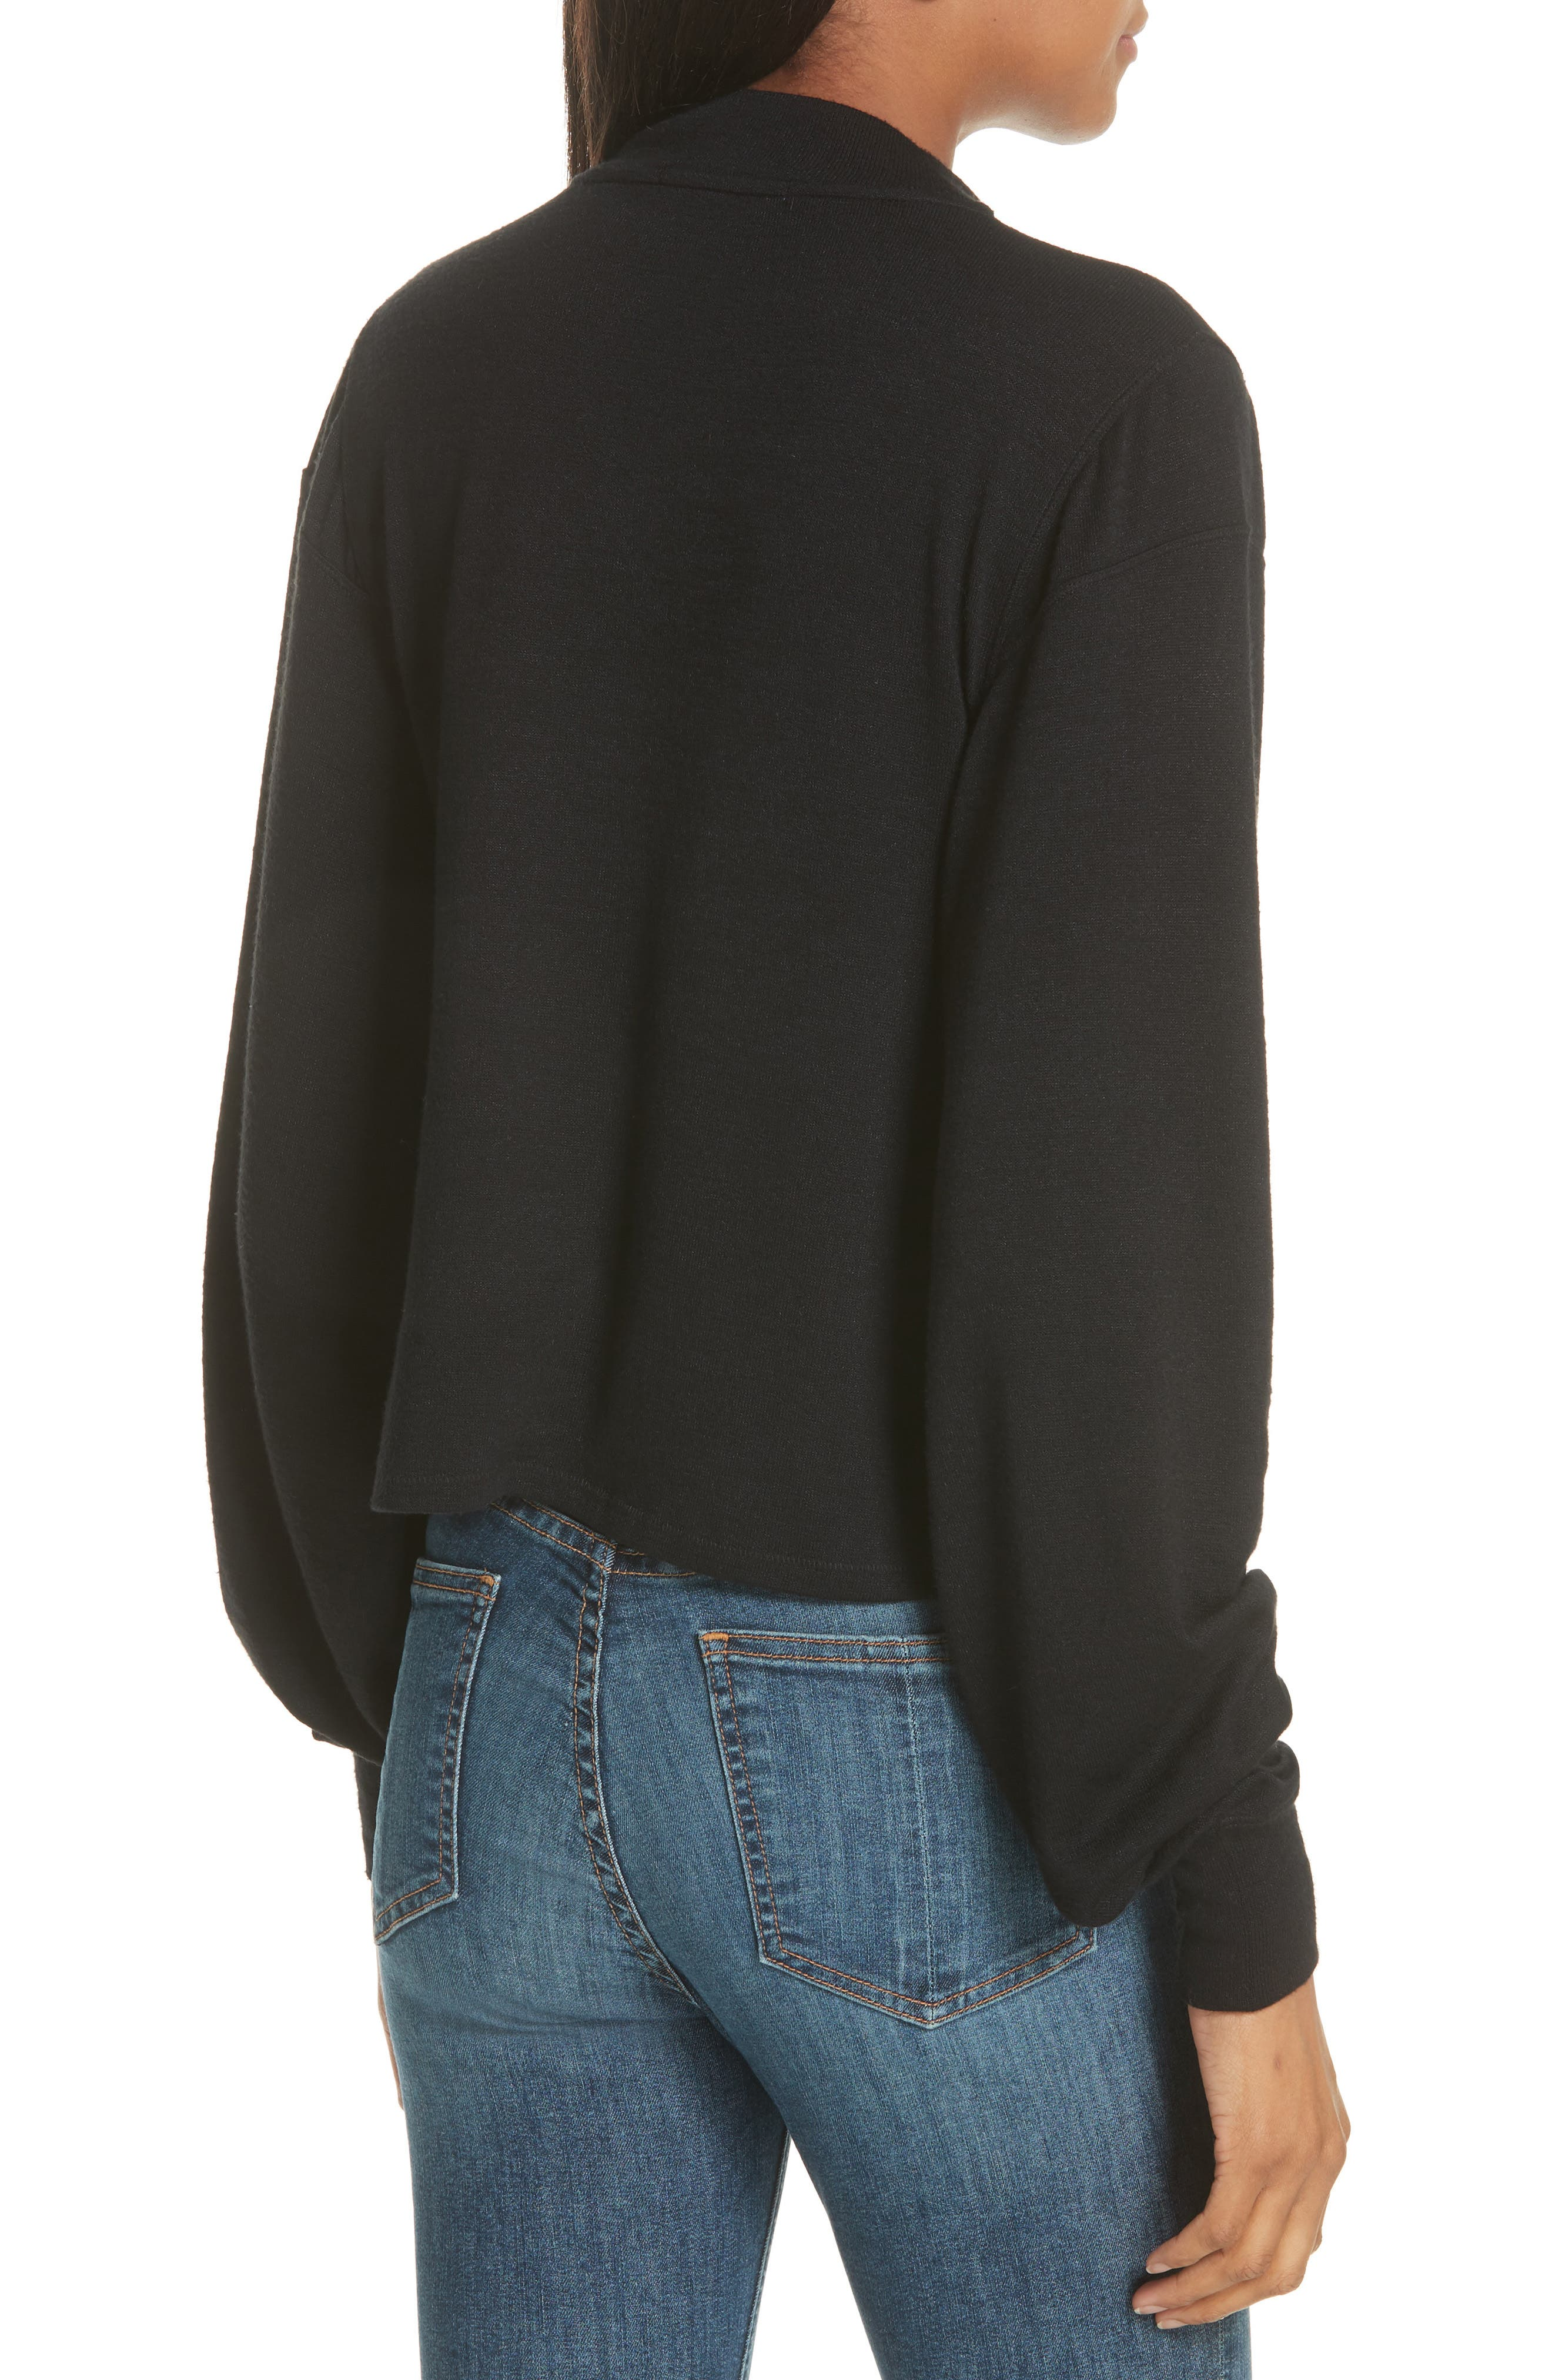 RAG & BONE,                             JEAN Bigsby Long Sleeve Top,                             Alternate thumbnail 2, color,                             001